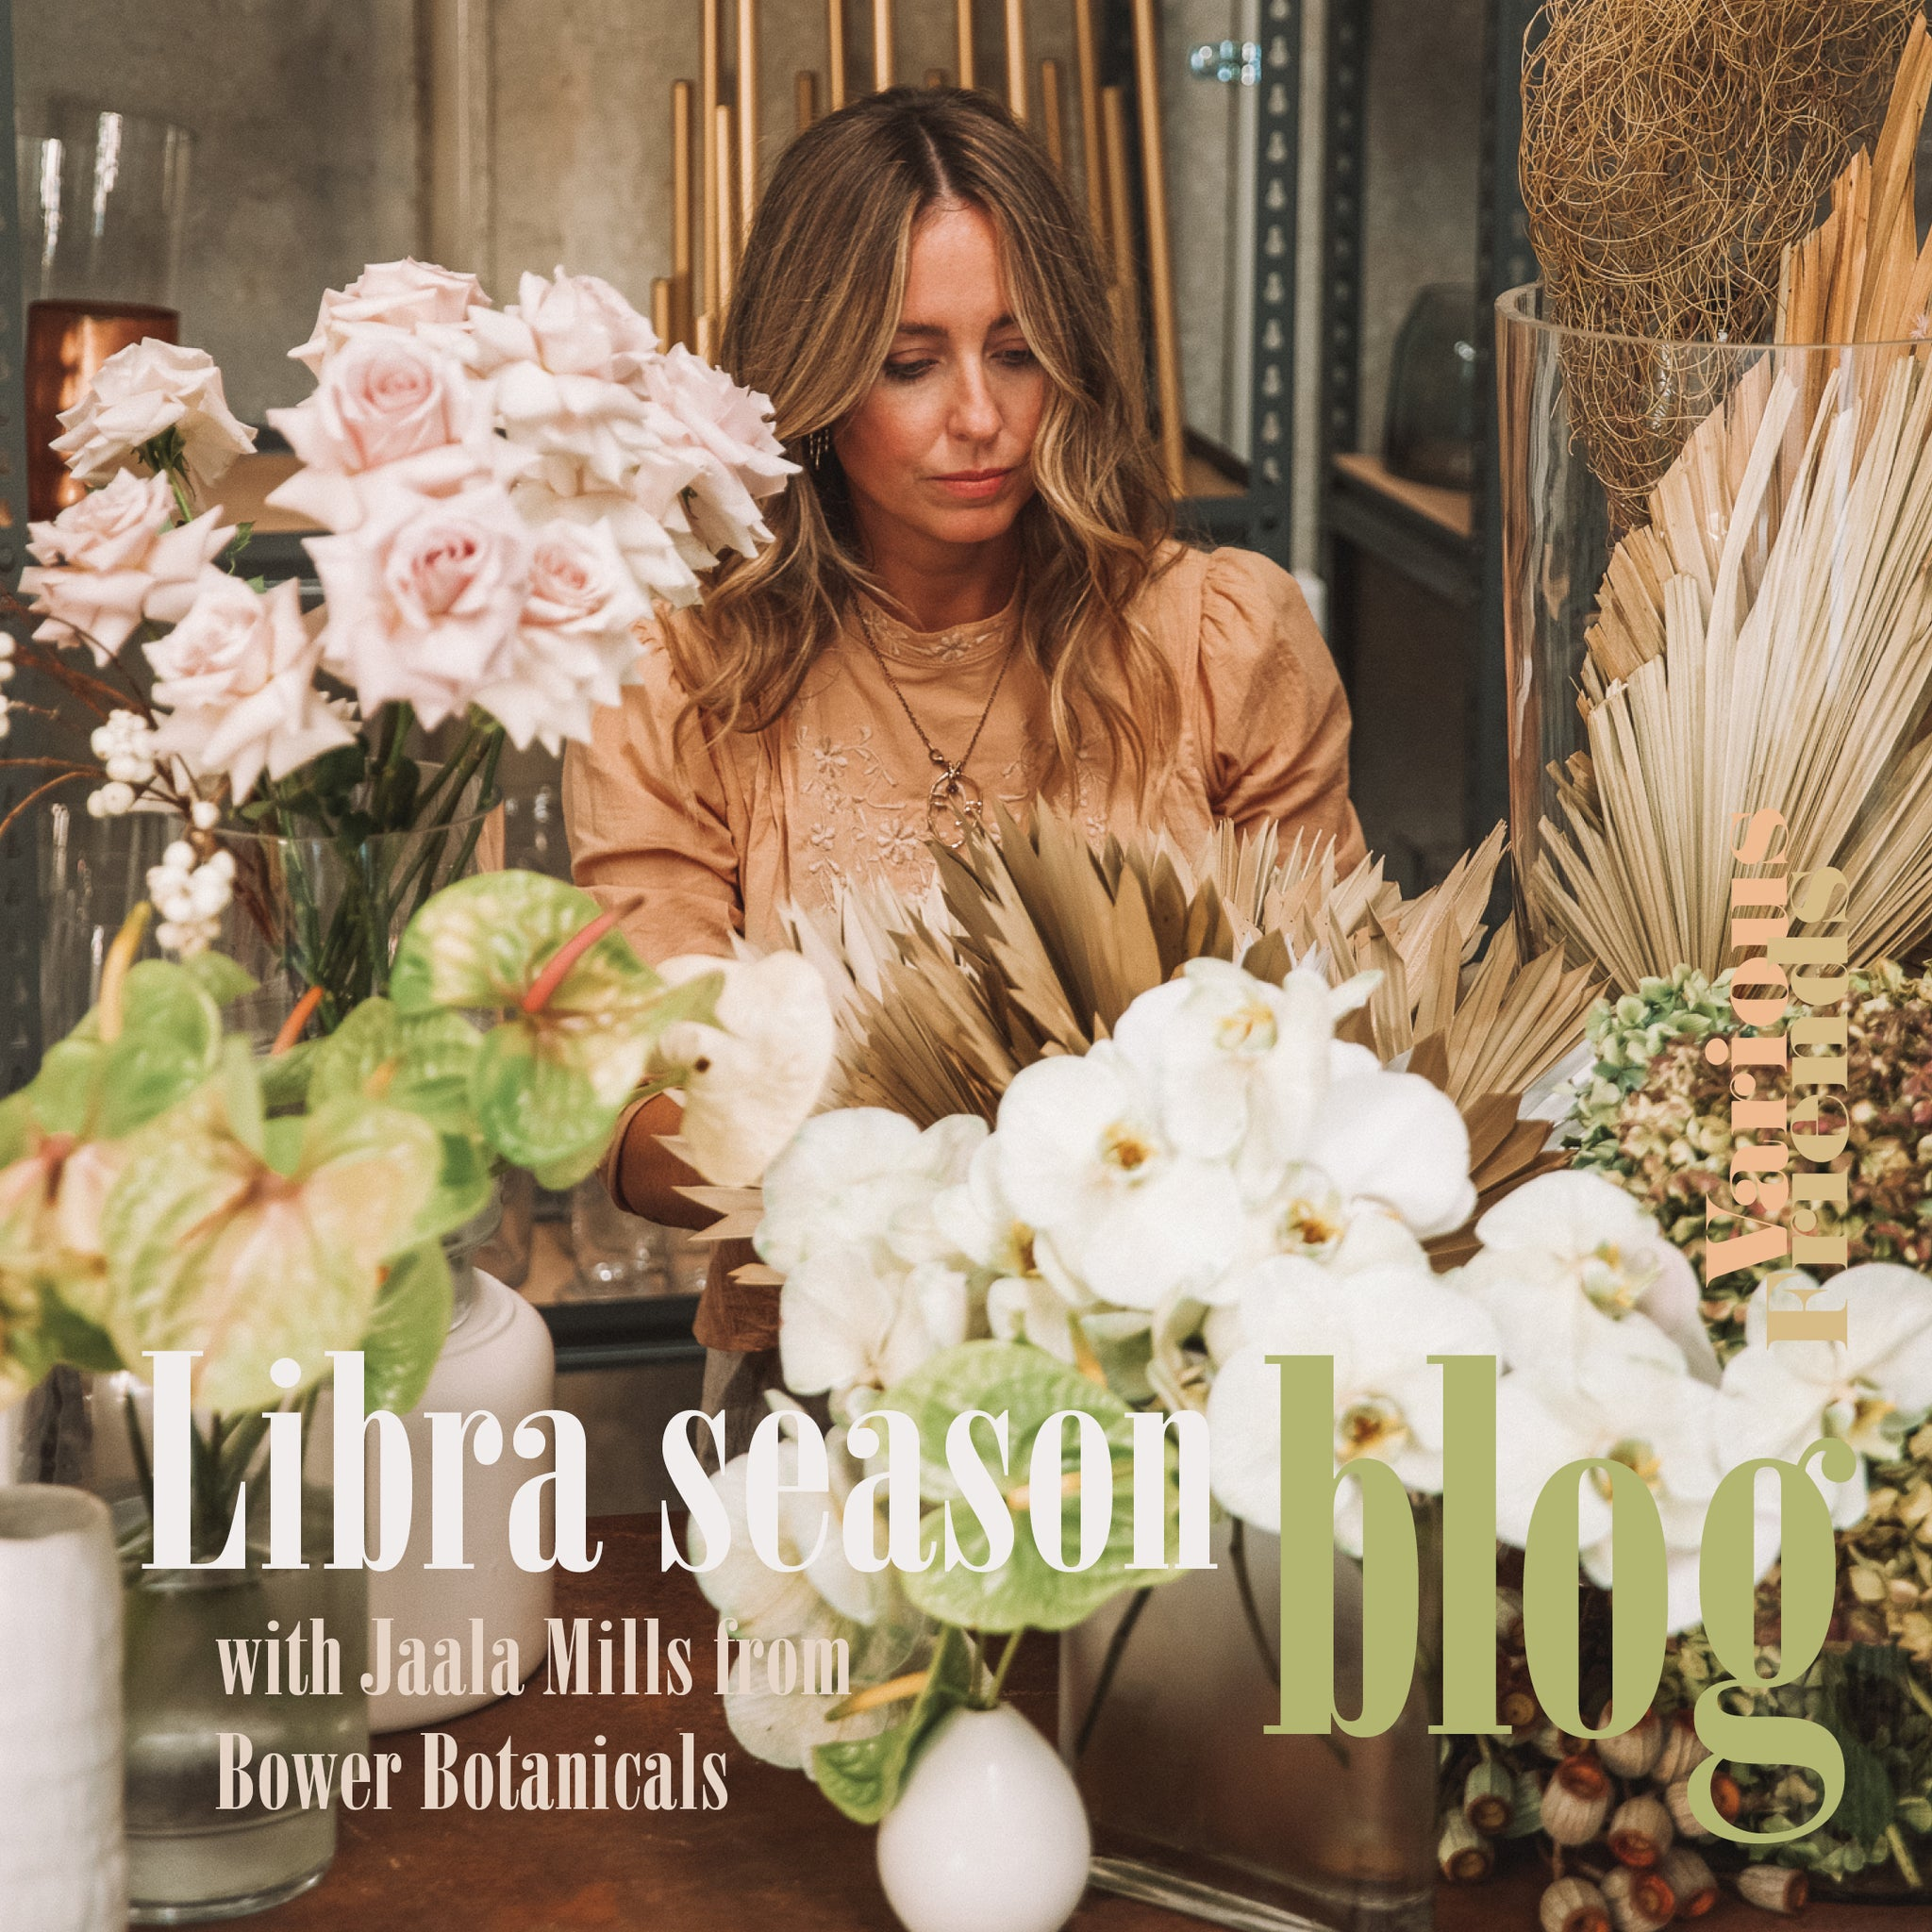 Libra Season with Jaala Mills from Bower Botanicals